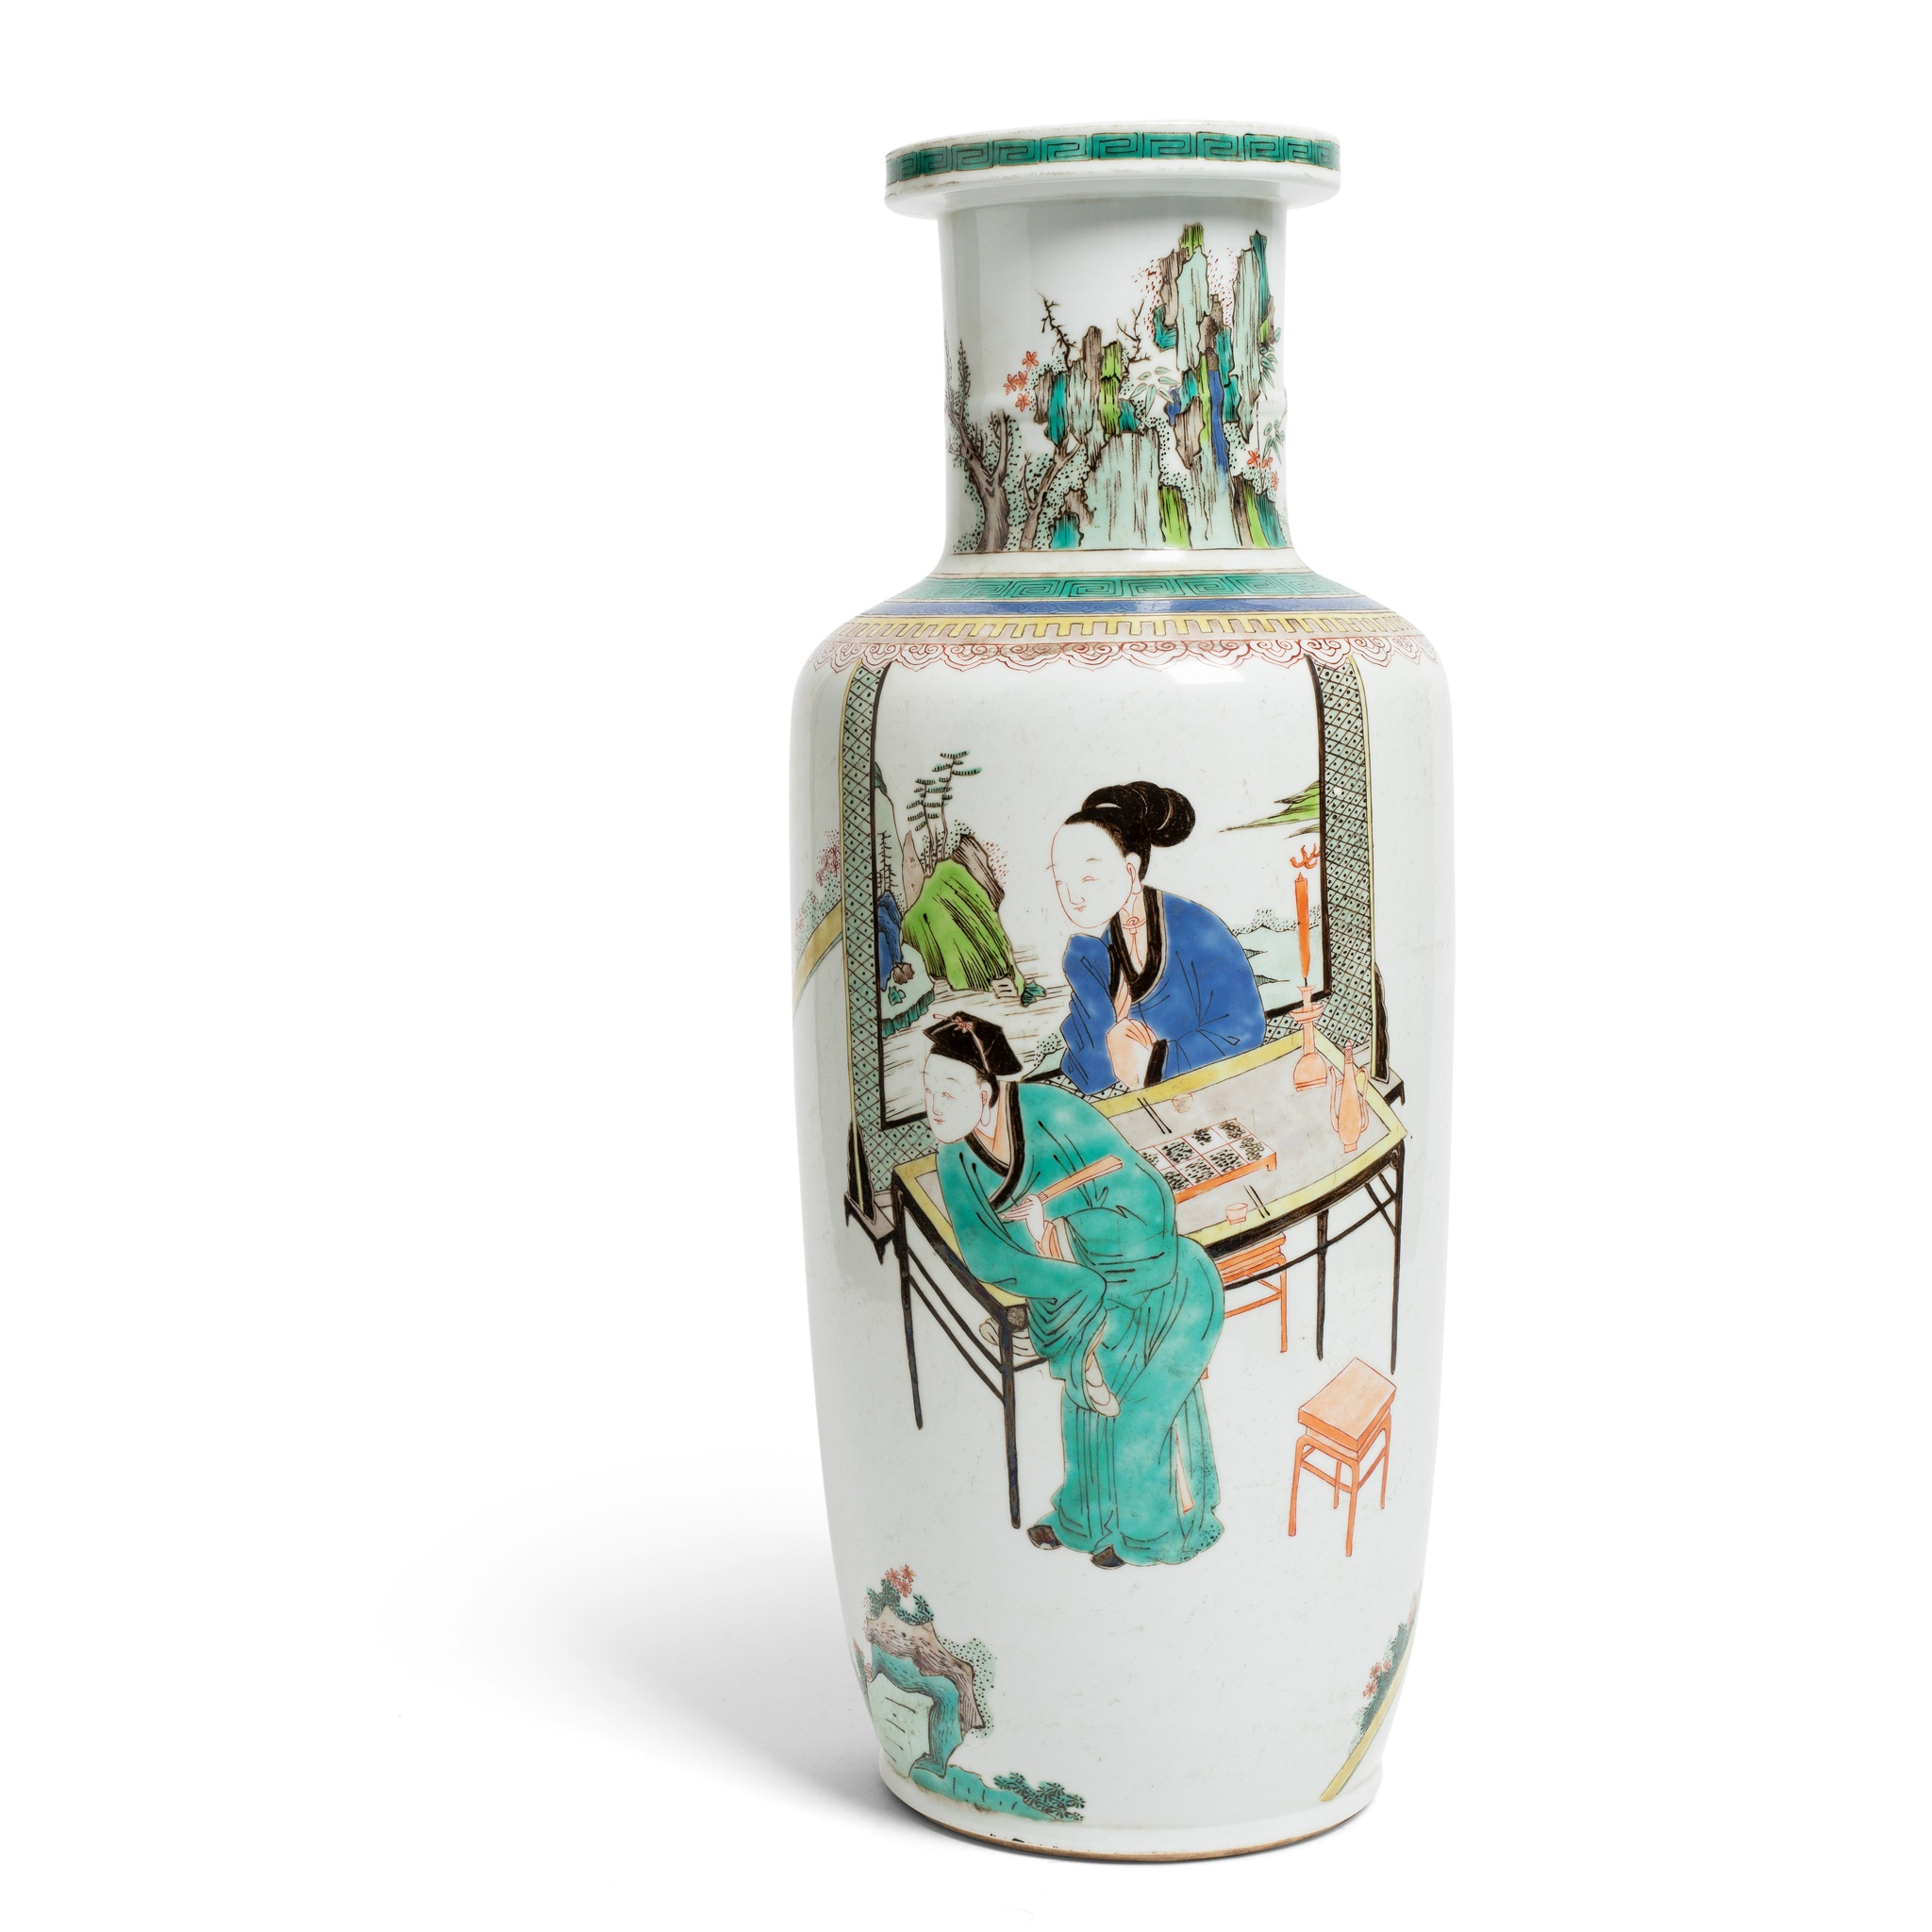 WUCAI 'SCHOLAR AT LEISURE' ROULEAU VASE | LATE MING TO EARLY QING DYNASTY, 17TH-18TH CENTURY, Provenance: private Swedish collection, 48.5cm high